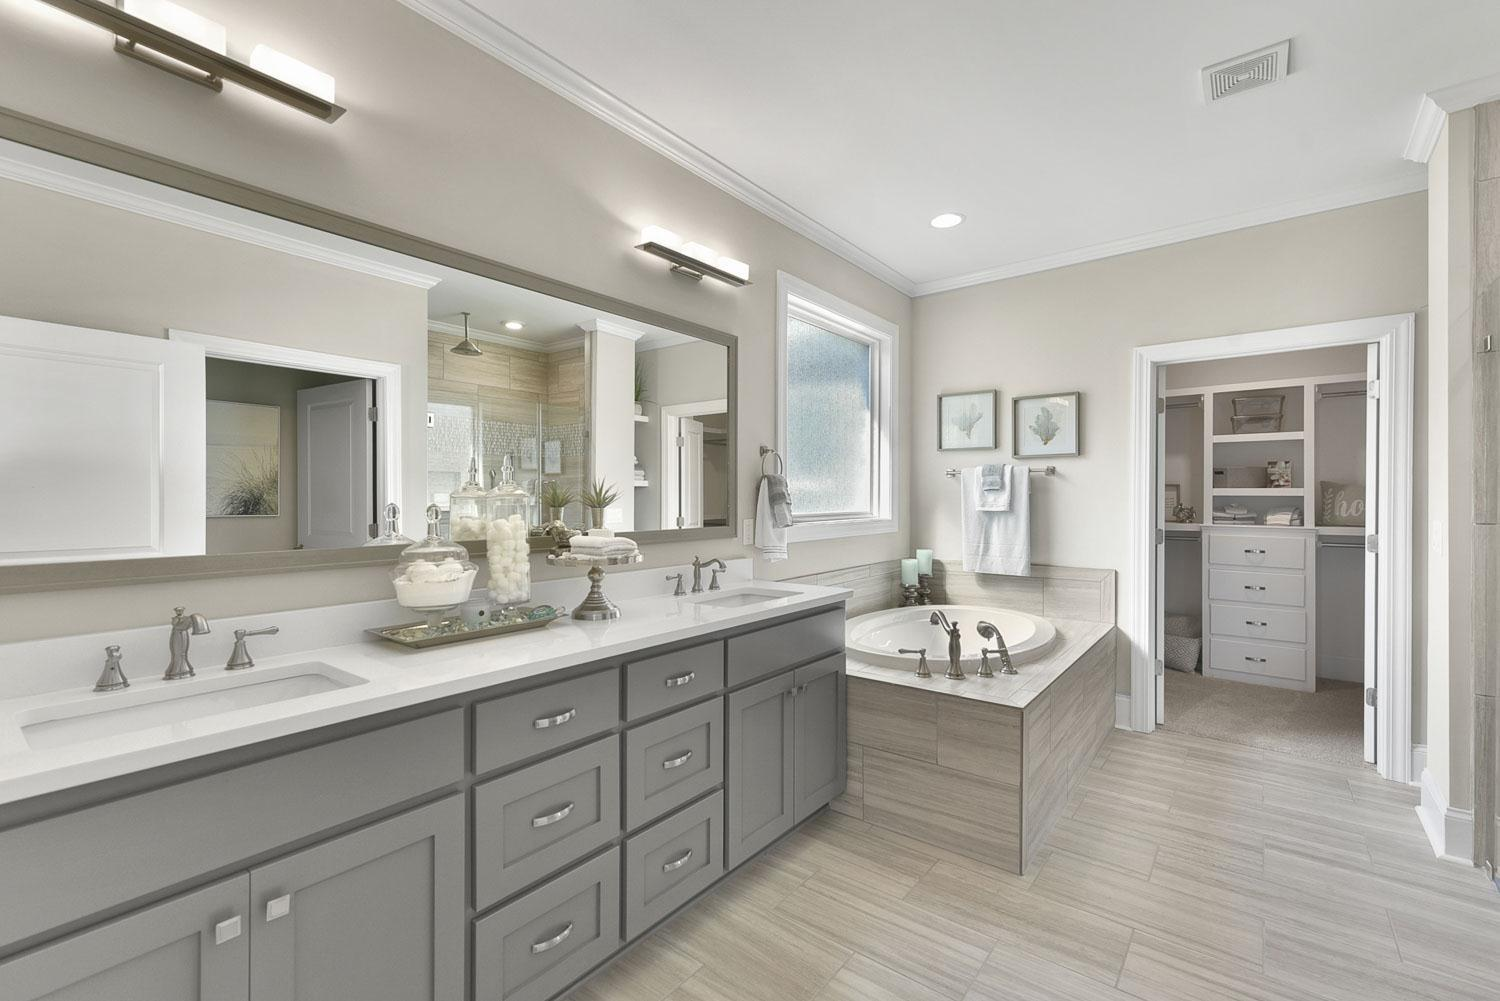 Bathroom featured in the Northwood Villas-Sawgrass III By Executive Construction Homes